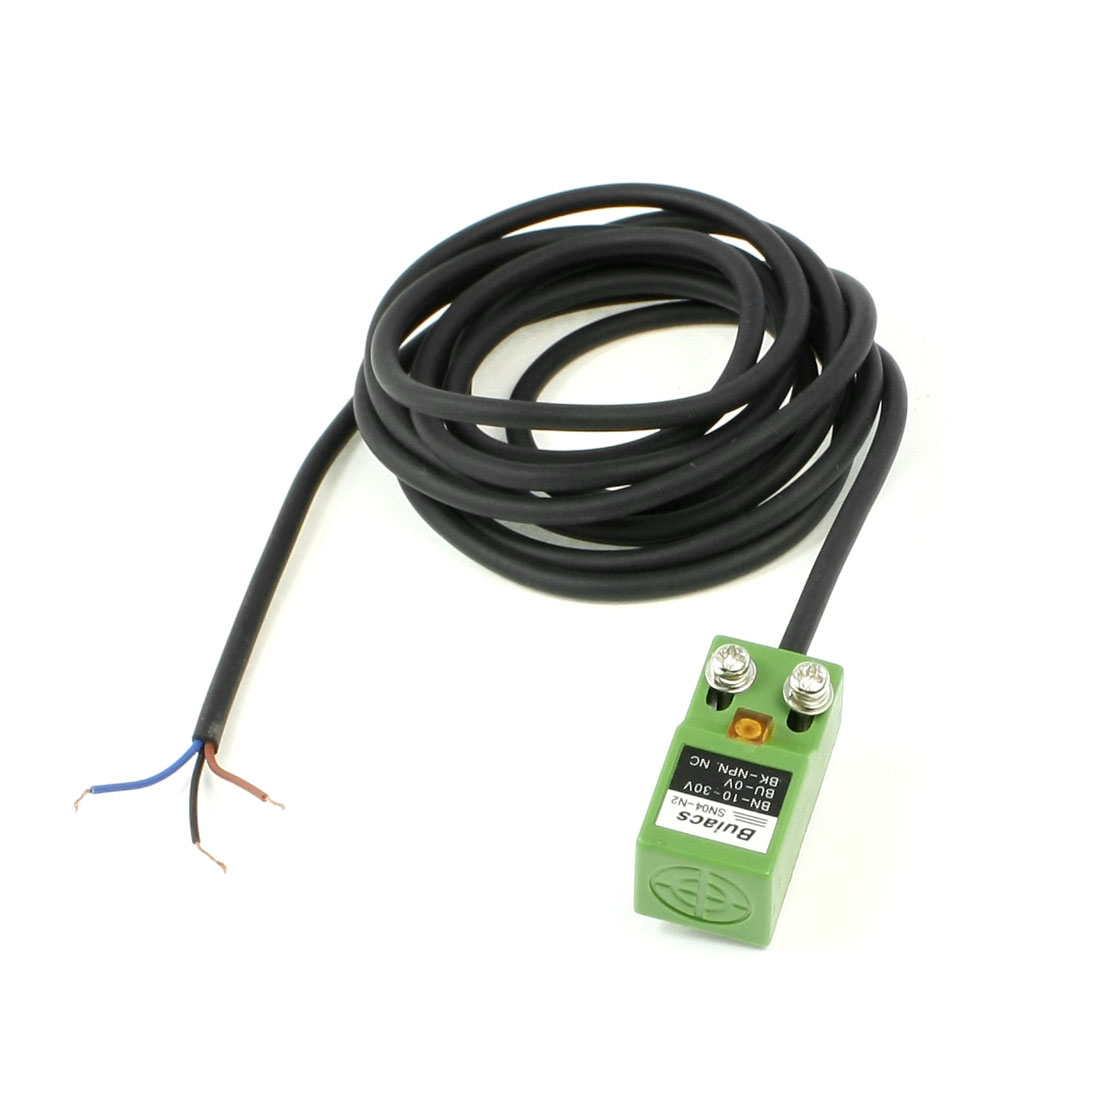 SN04-N2 NPN NC 4mm Inductive Proximity Sensor Switch 2 Wire DC 10-30V 1.9M Cable